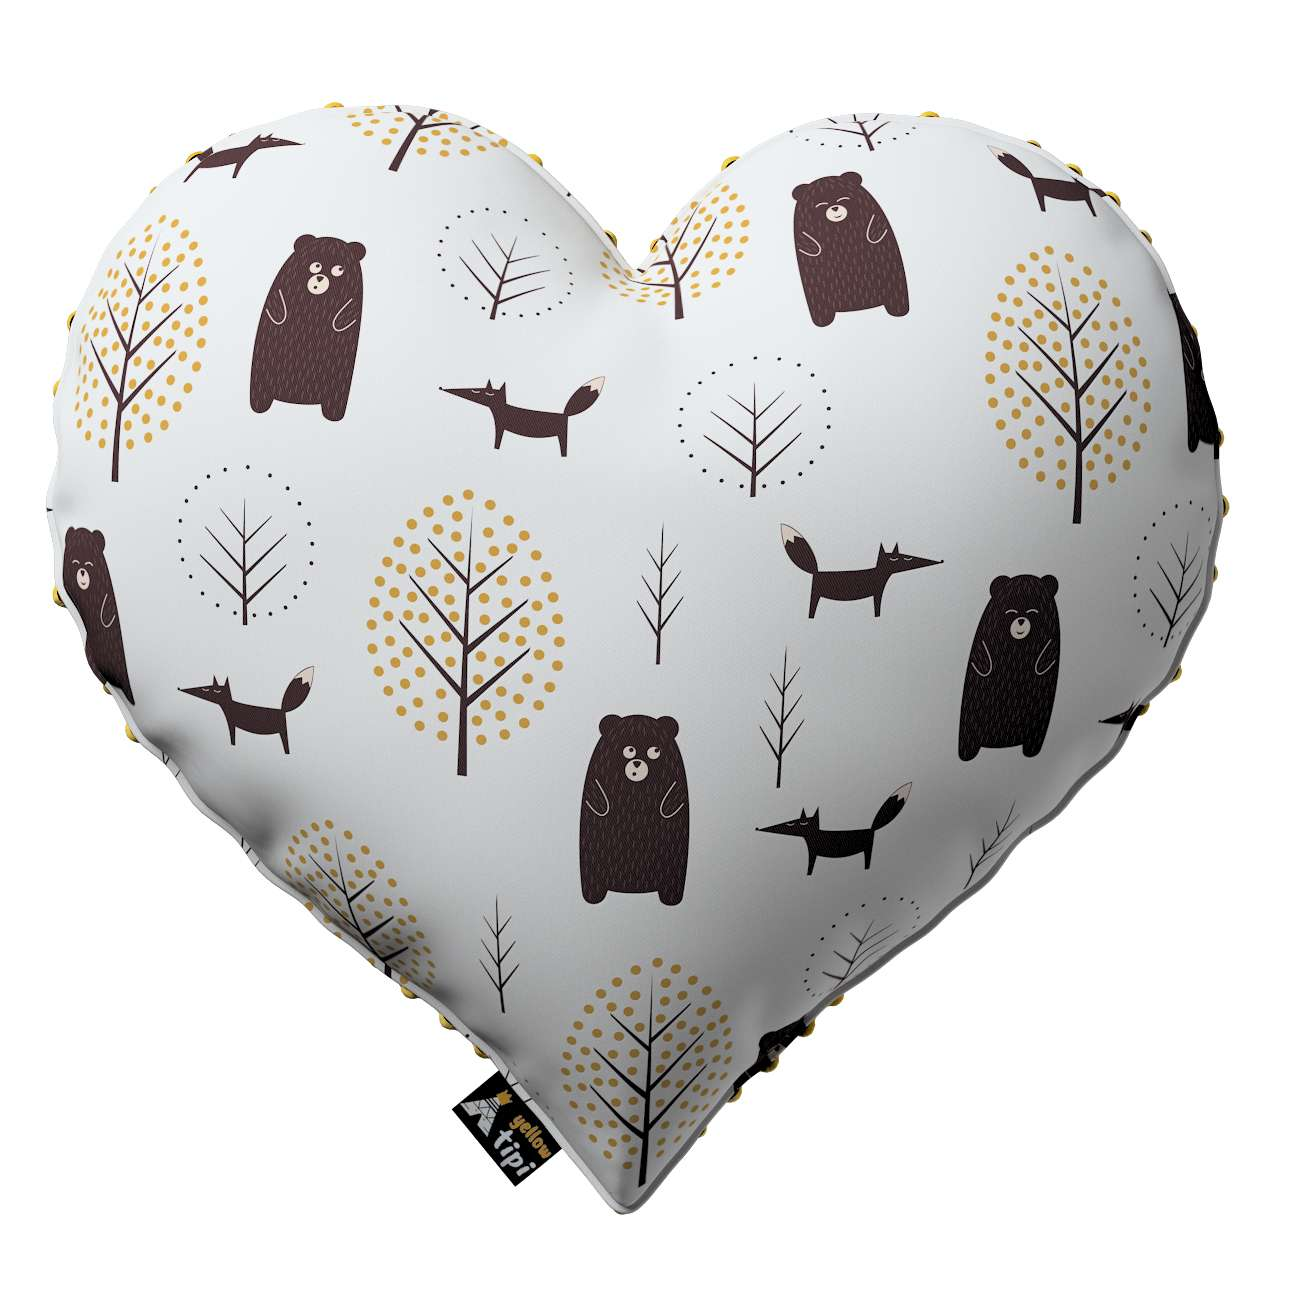 Kissen Heart of Love aus Minky von der Kollektion Magic Collection, Stoff: 500-19